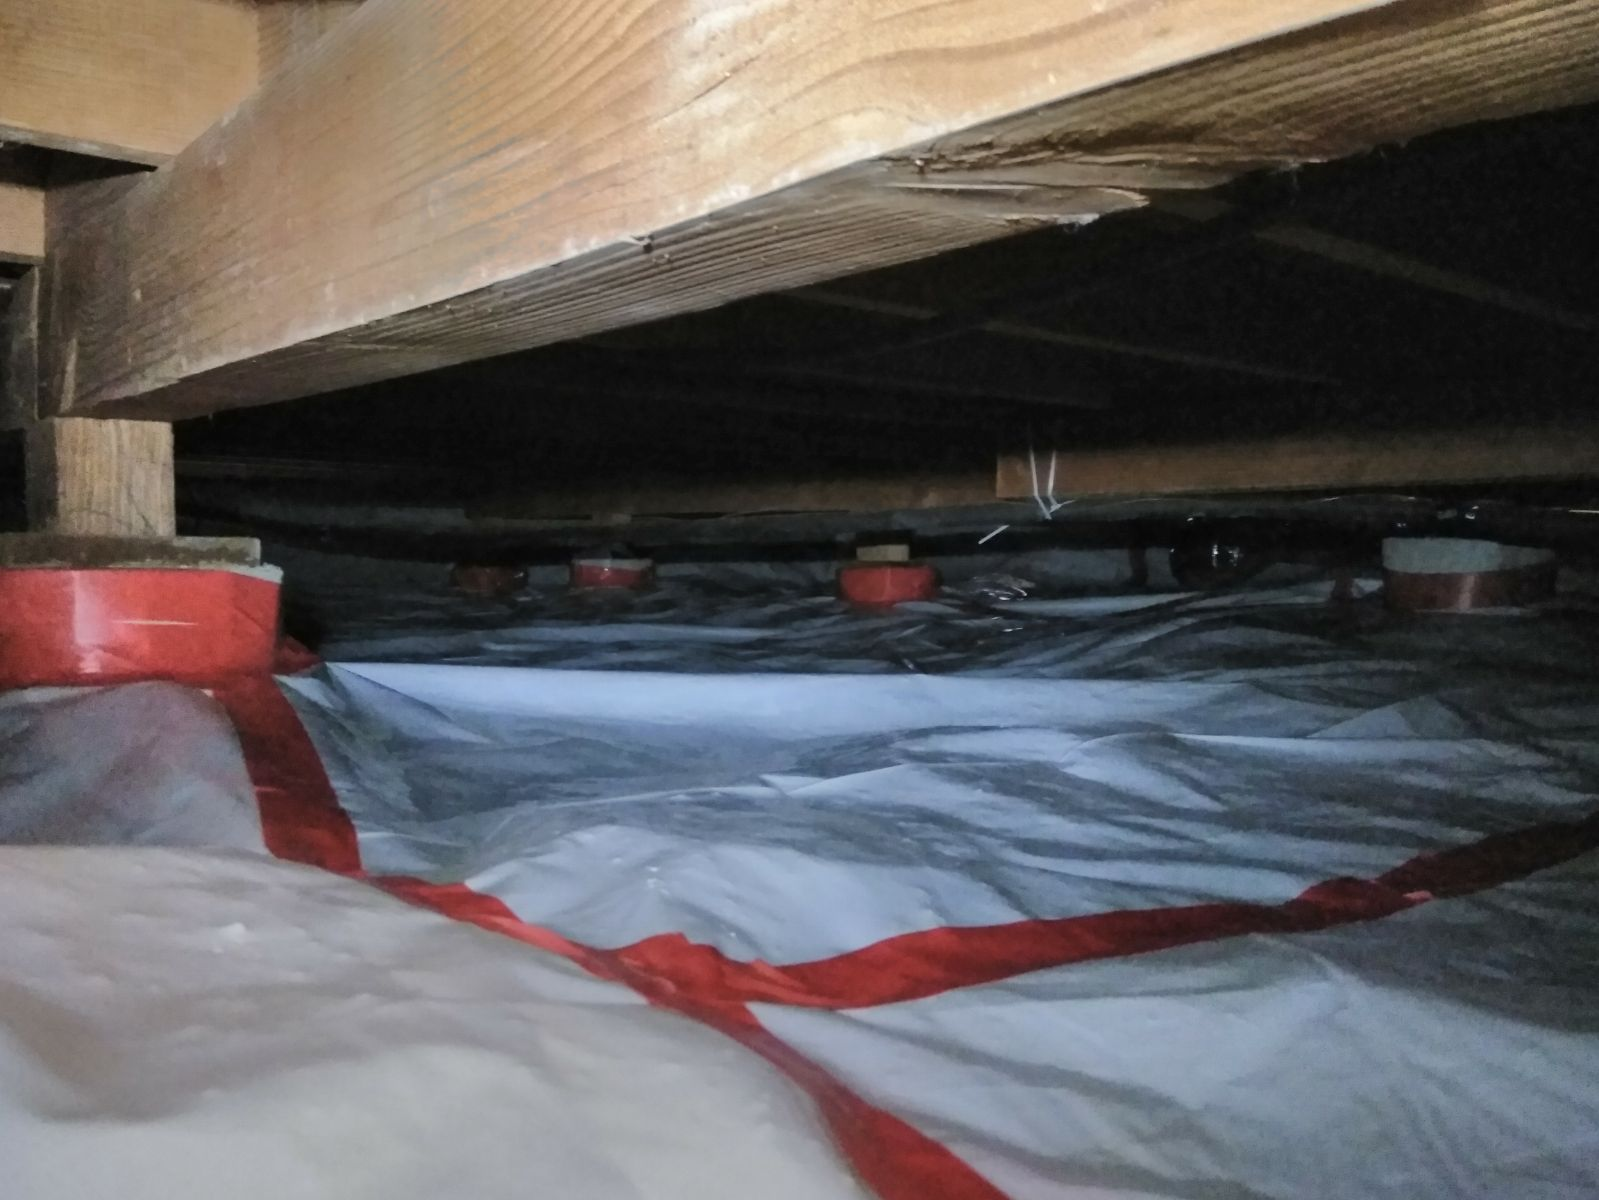 Rodent Solutions Pro - Rodent Proofing | Attic Insulation Removal Oakland, CA image 9